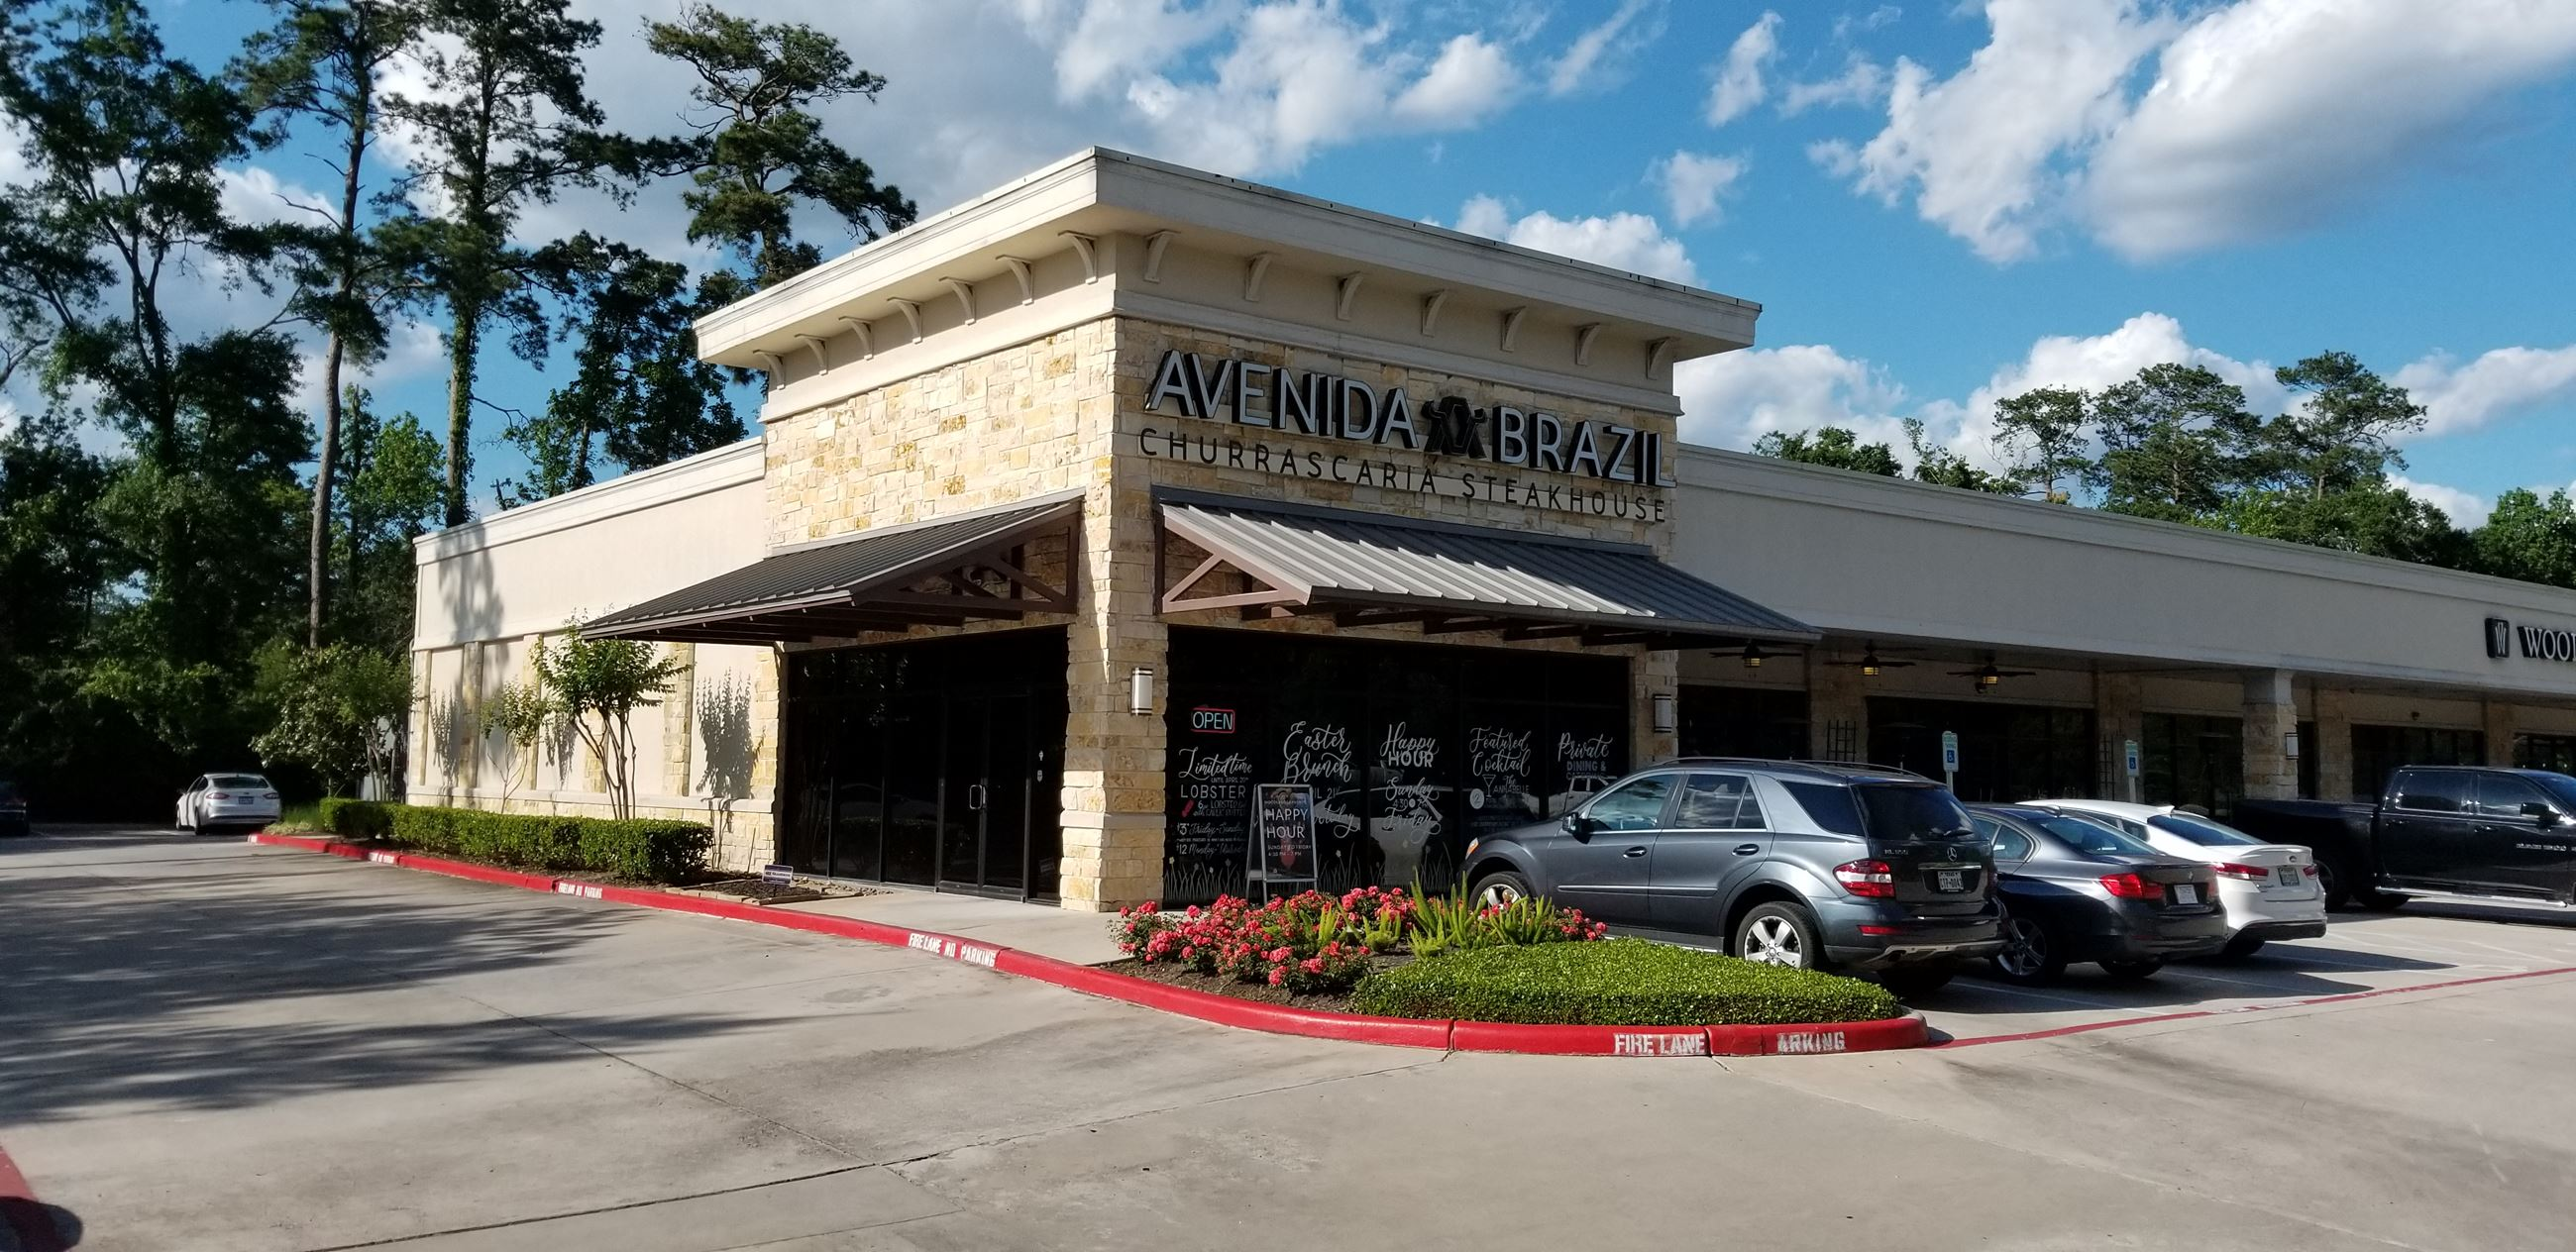 Exterior of Avenida Brazil Churrascaria Steakhouse